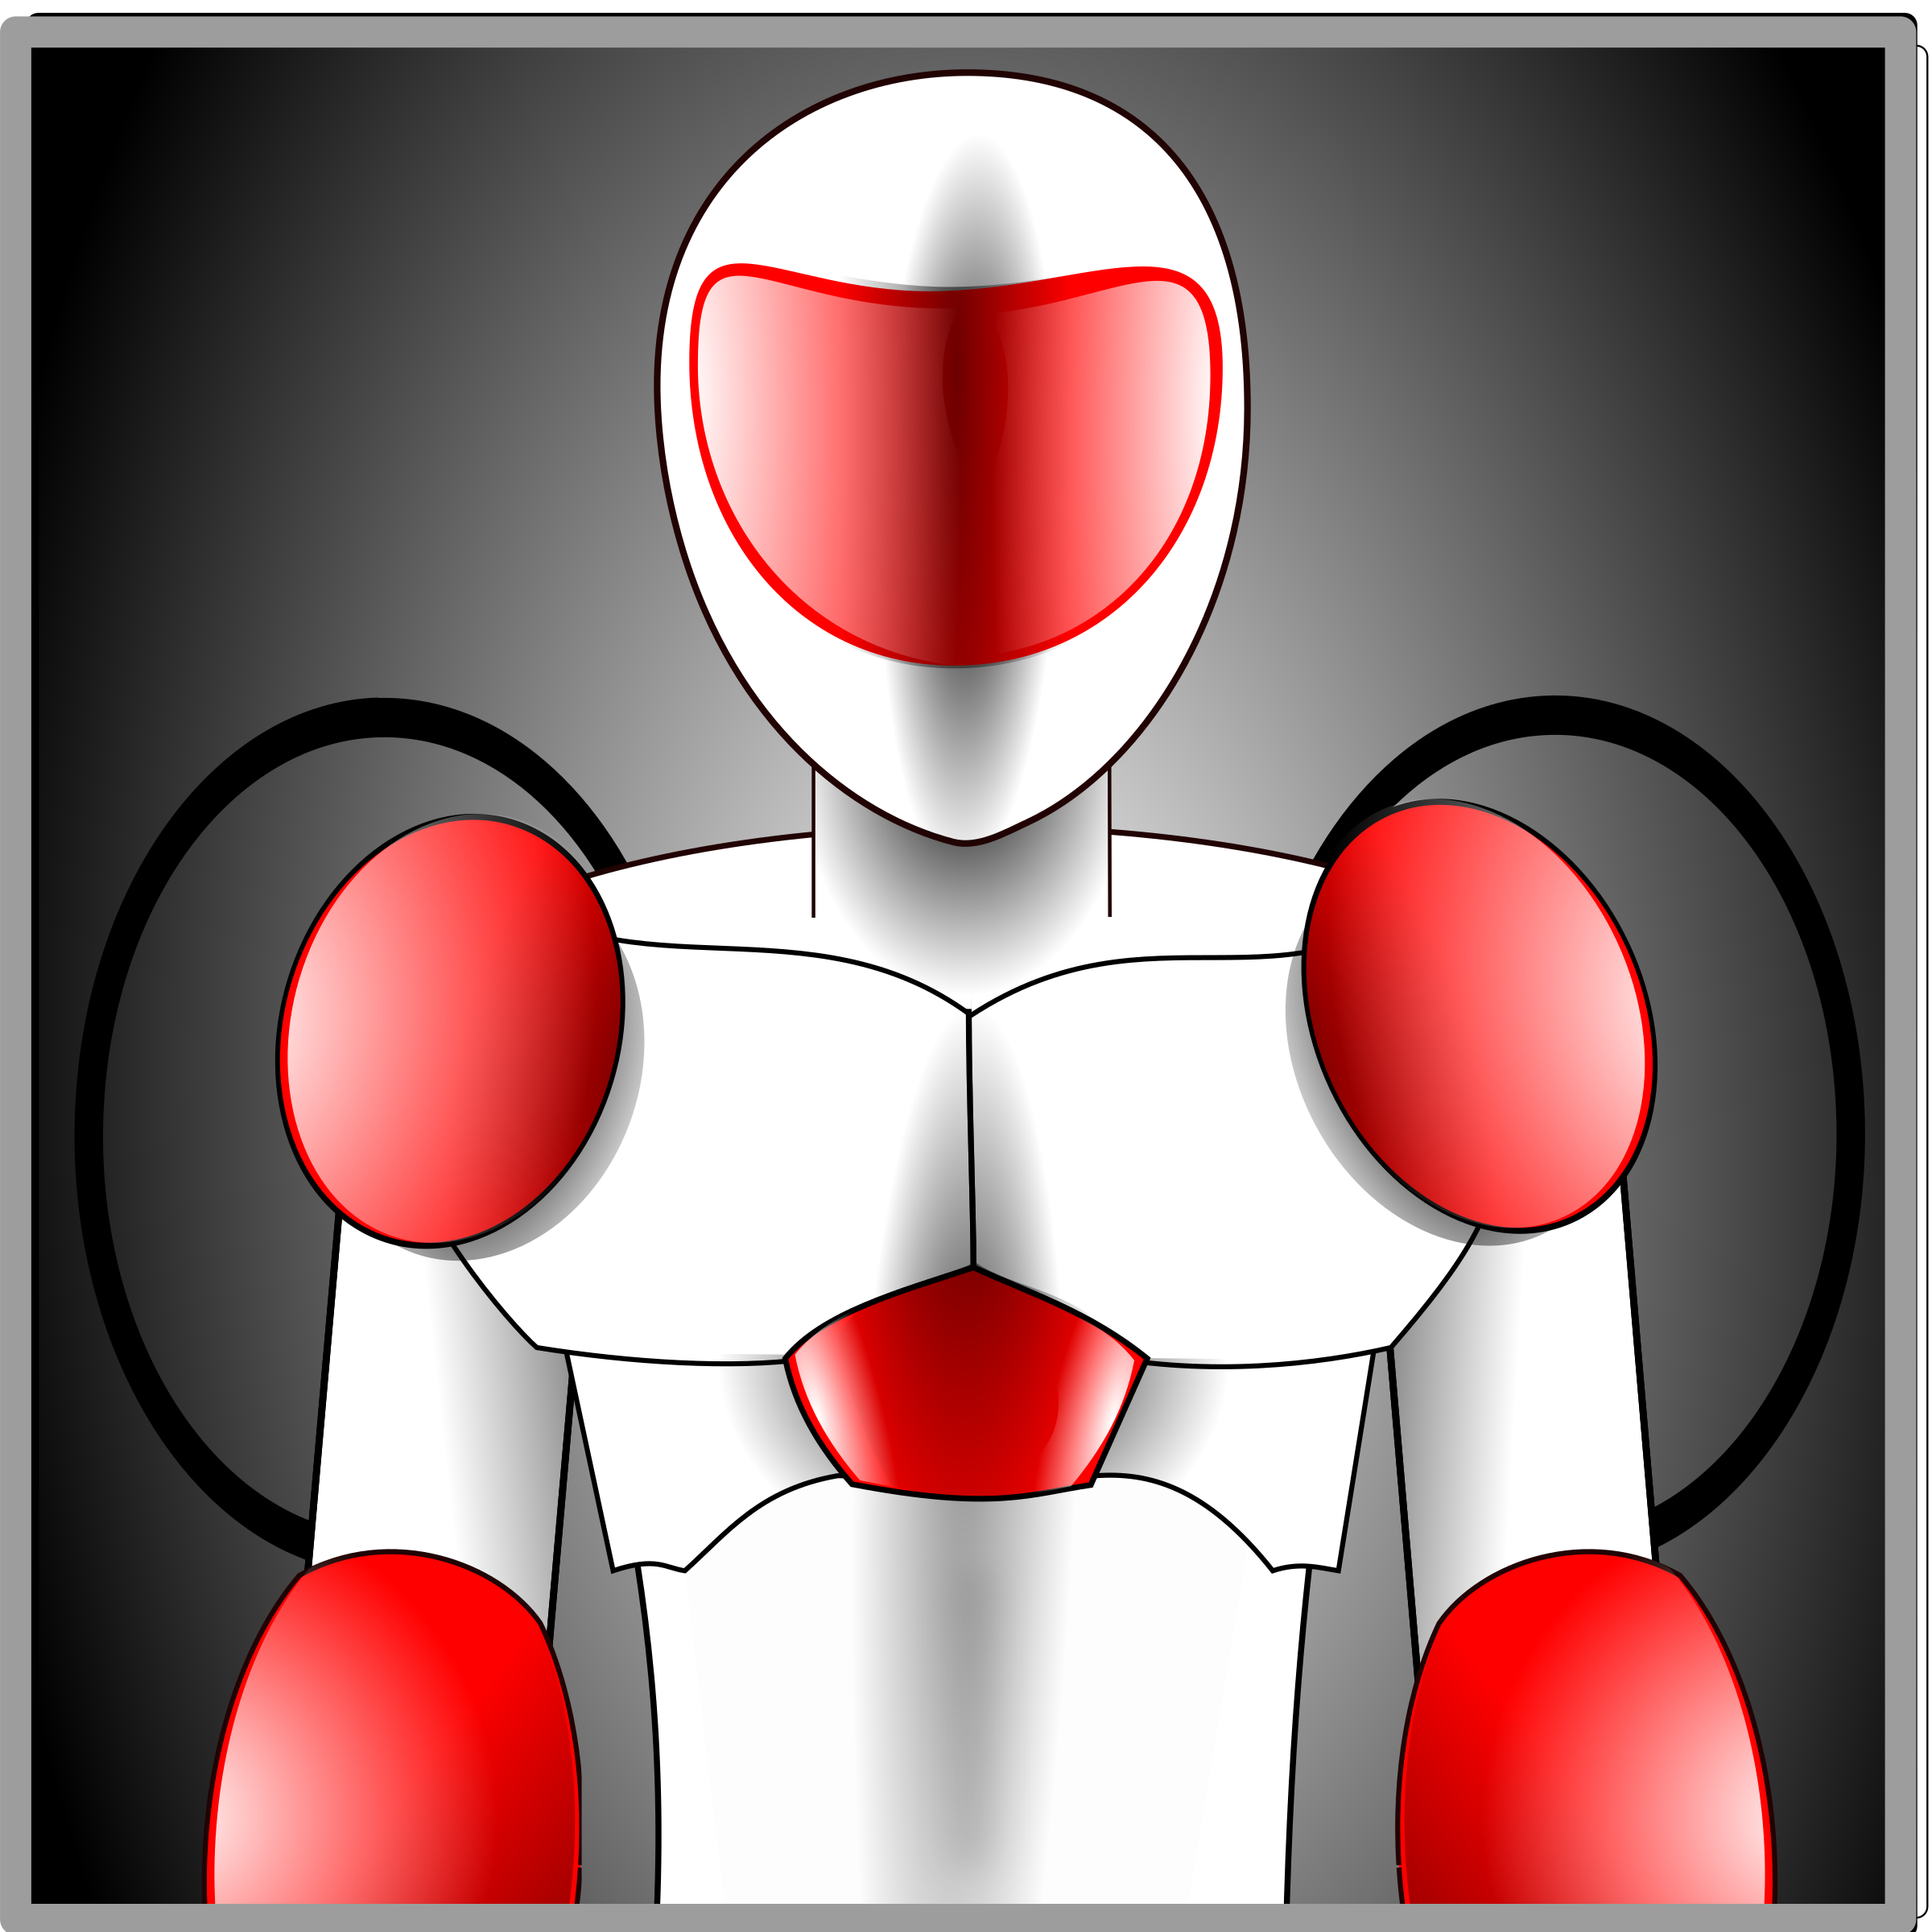 Replicante 1.0 avatar by asrafil